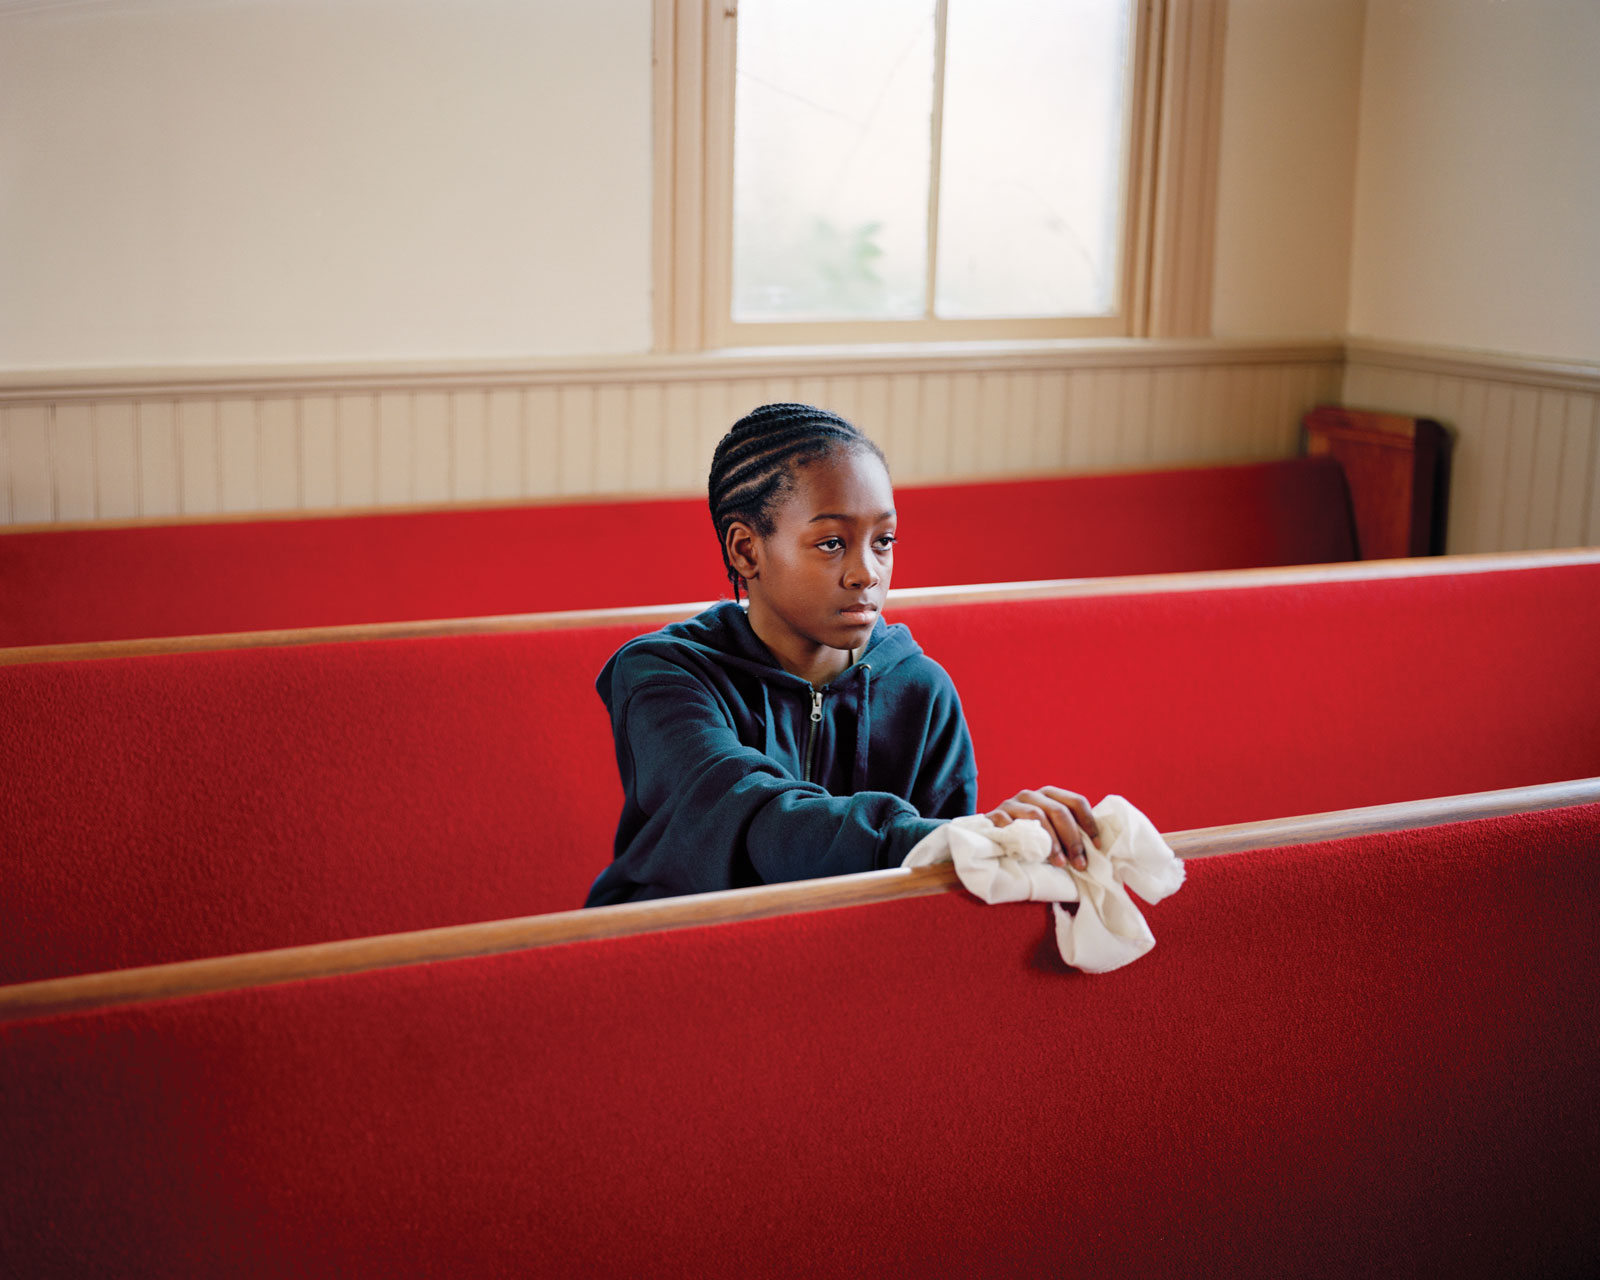 <i>Young Boy Cleaning Church, VA</i> (2011) by Susan Worsham